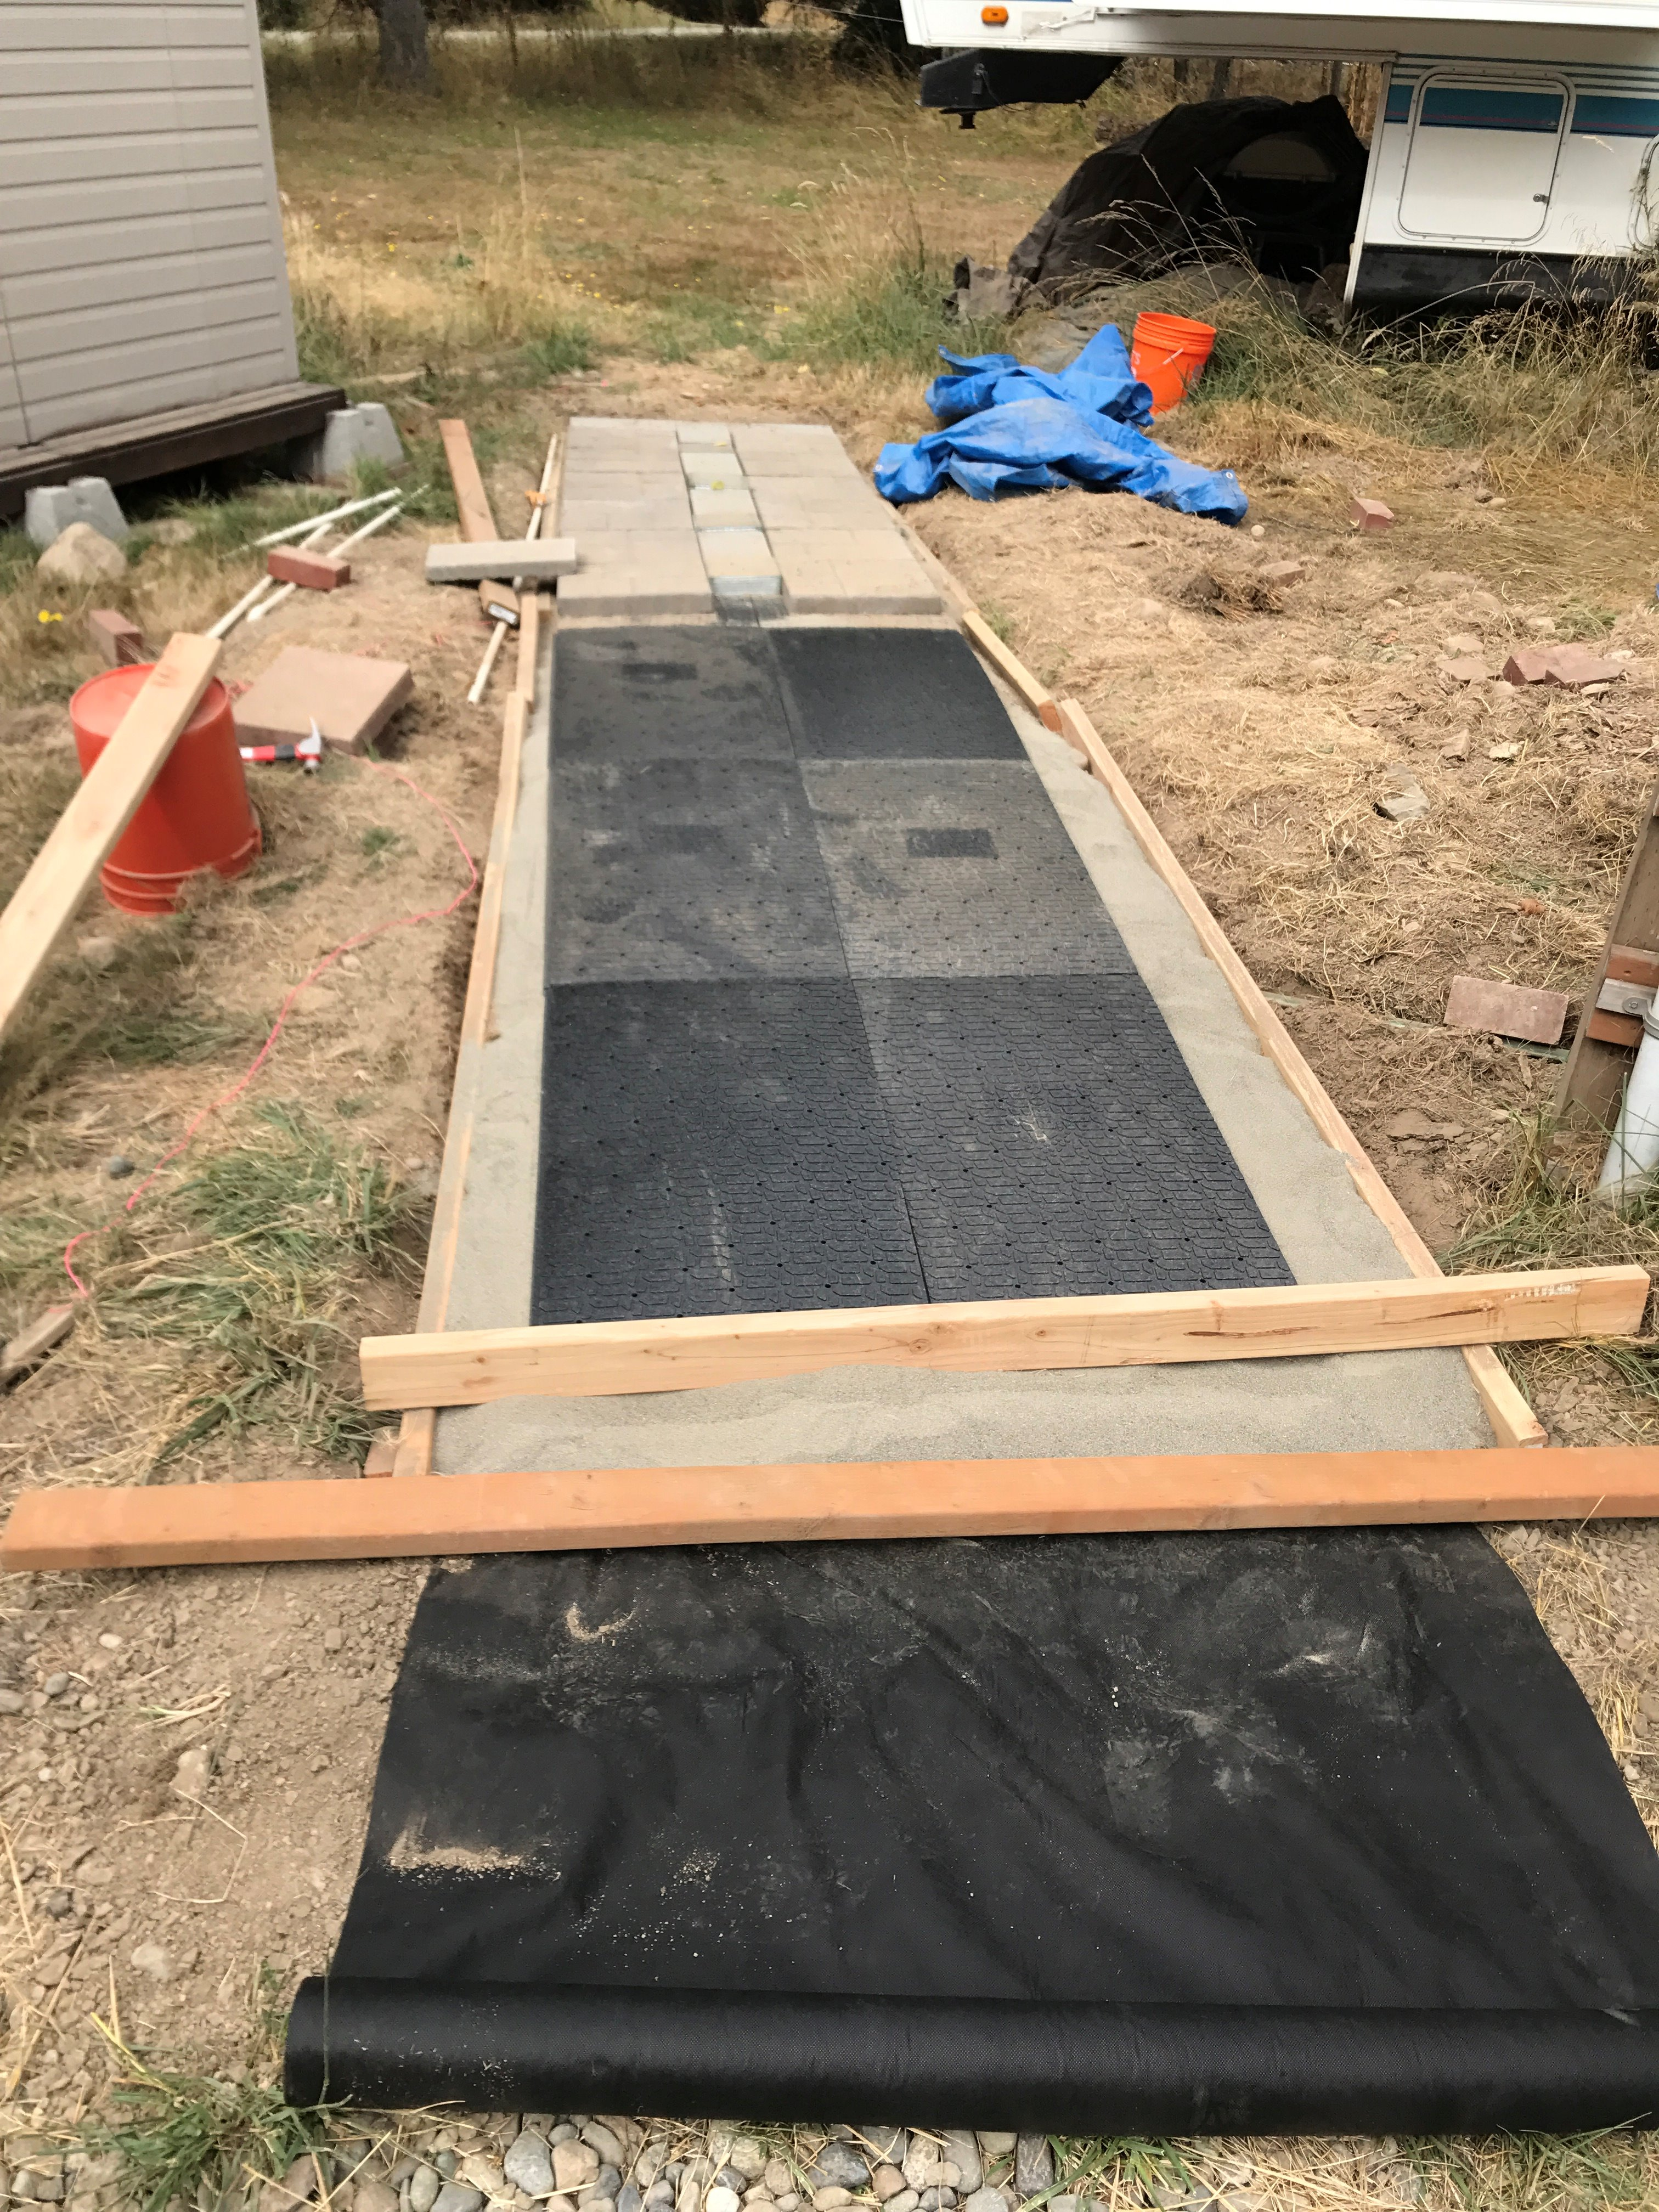 Picture of Basics of Making a Paver Based Pathway - Part 2 Layers